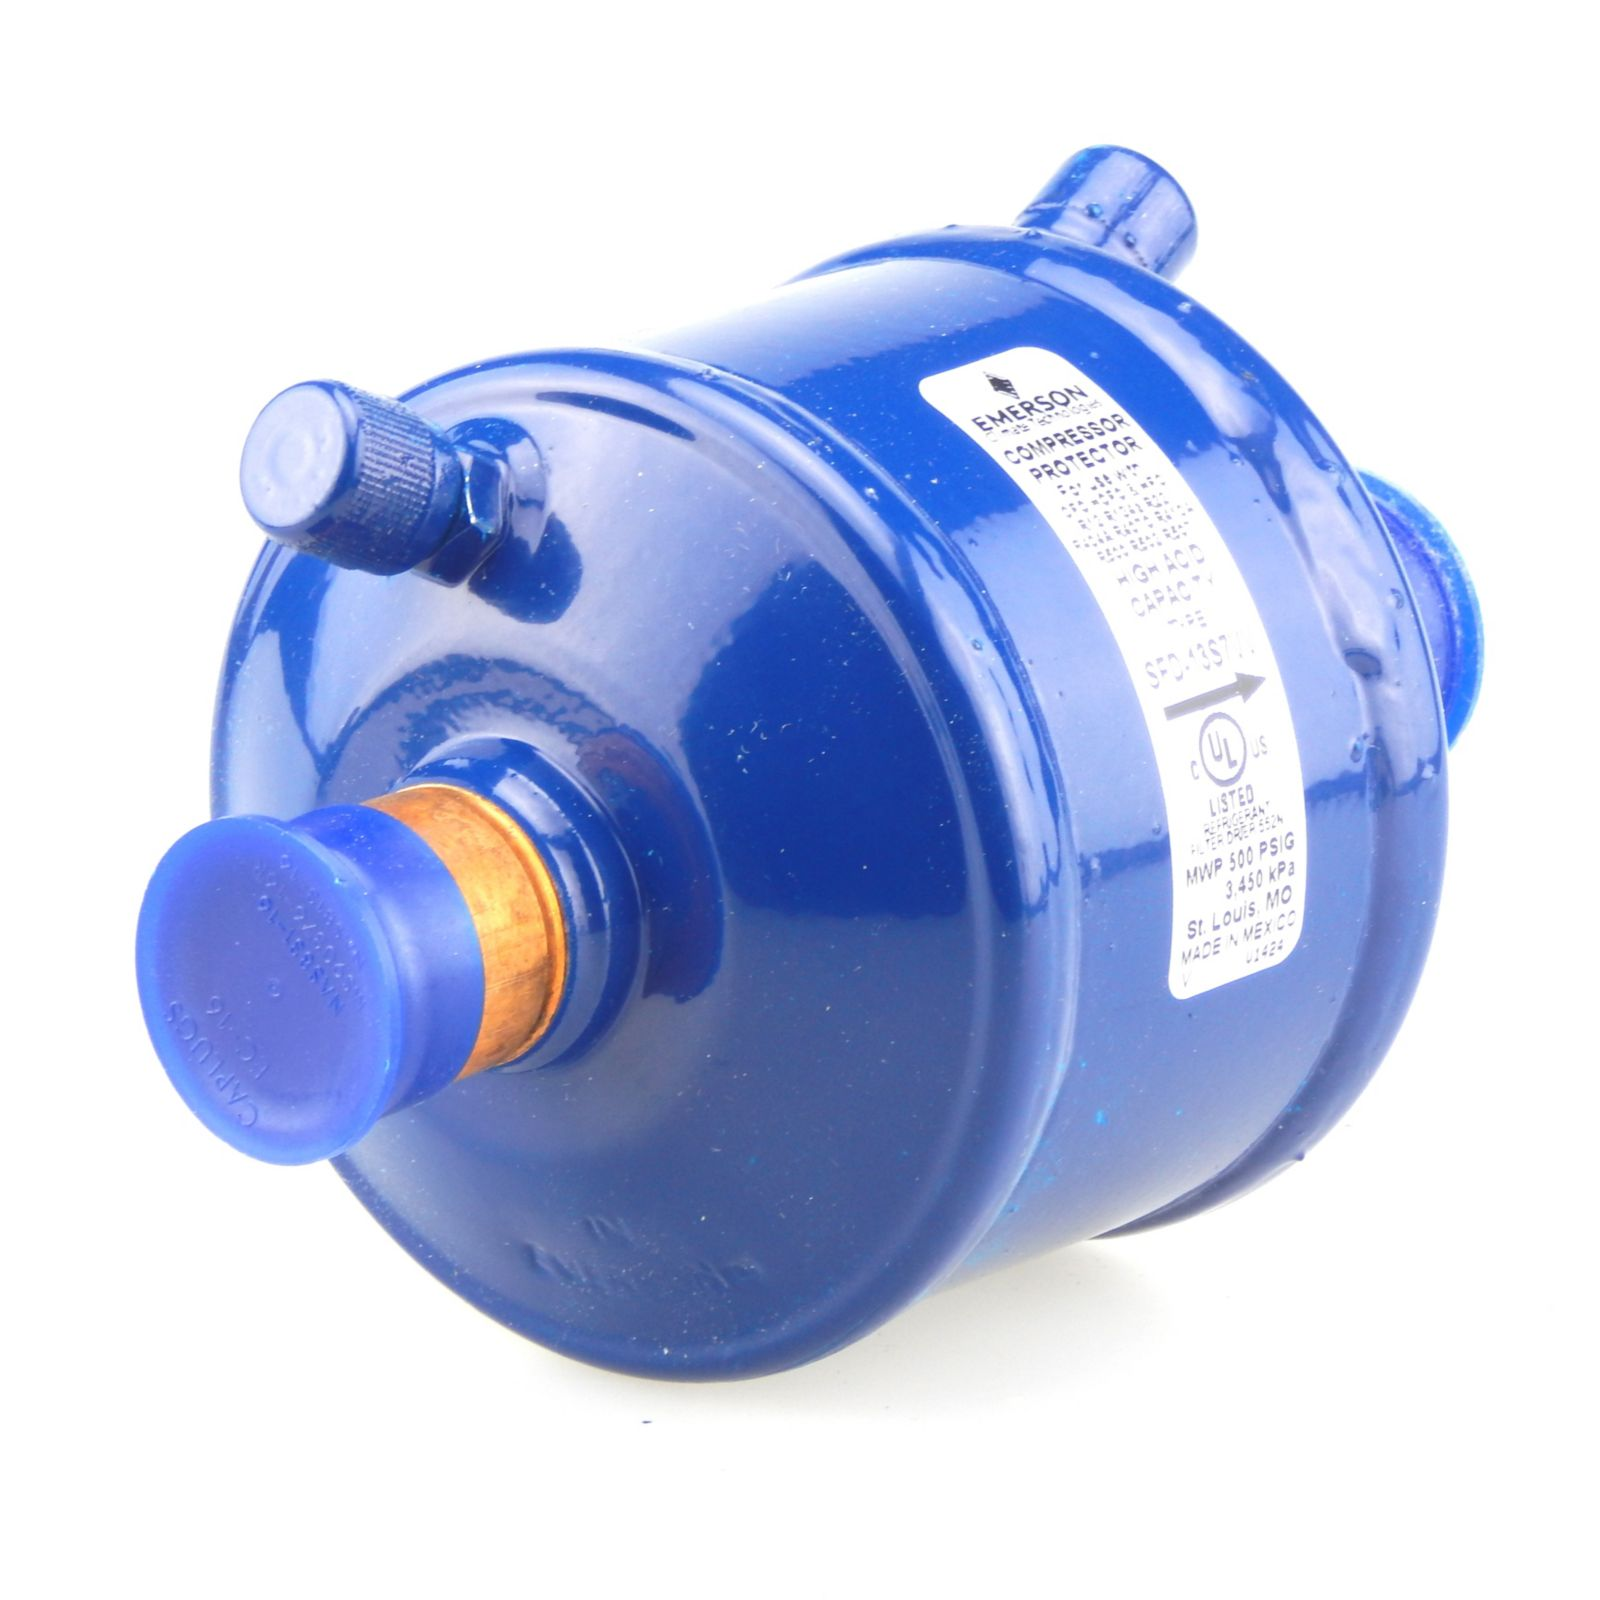 "Emerson 060262 - SFD13S7W Dual Access Suction Line Filter Drier, 13 Cubic Inch, 7/8"" ODF Connection"